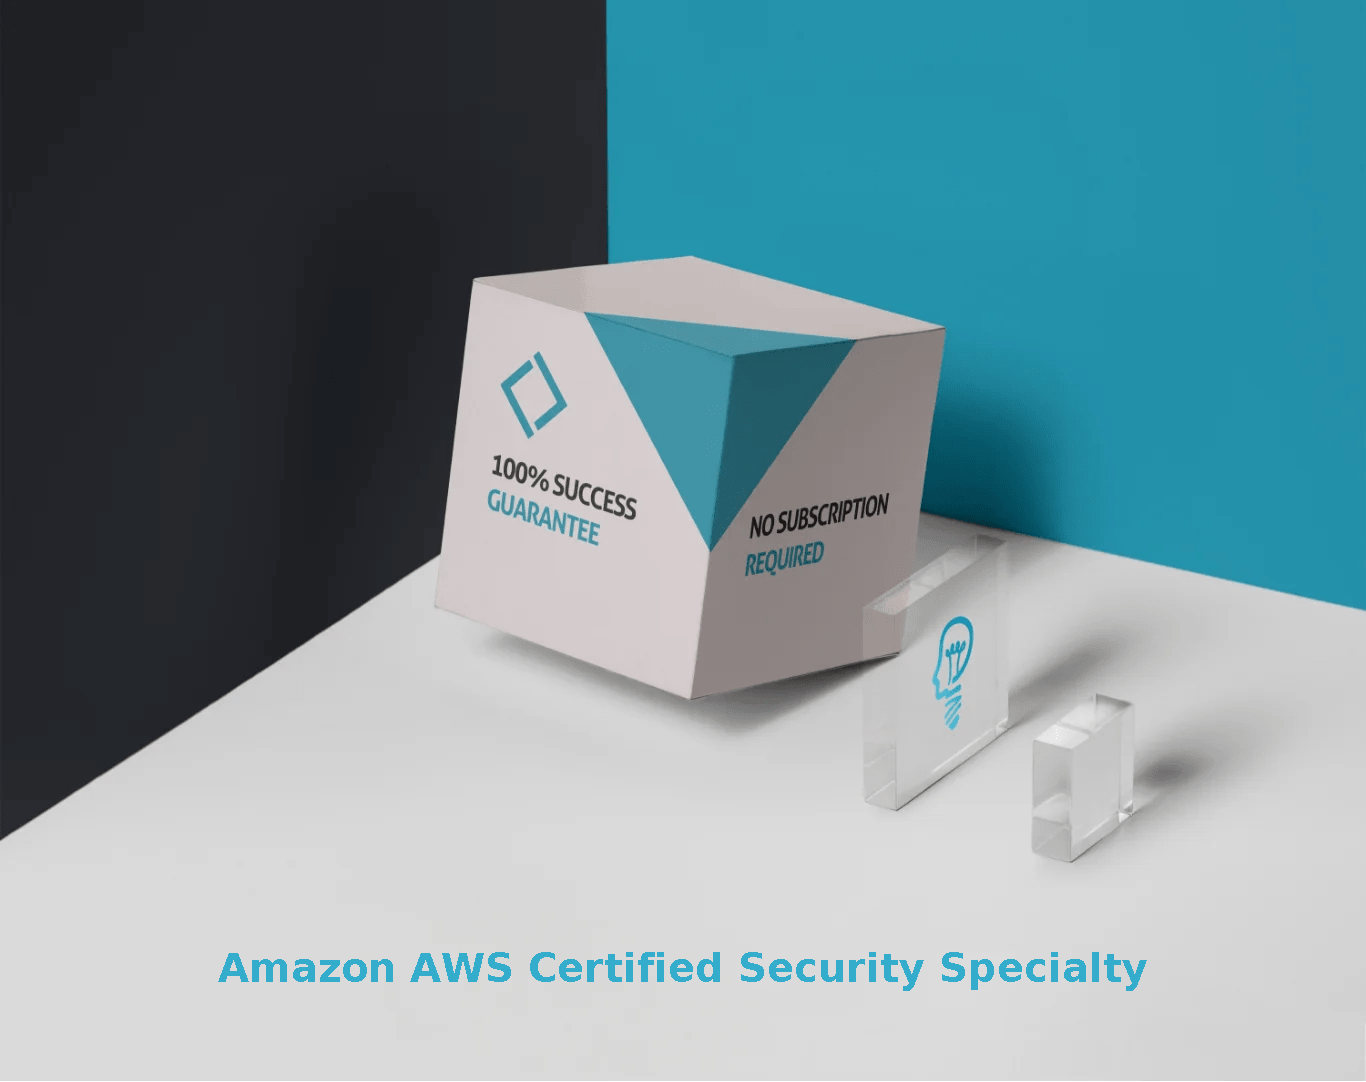 Amazon AWS Certified Security Specialty Exams